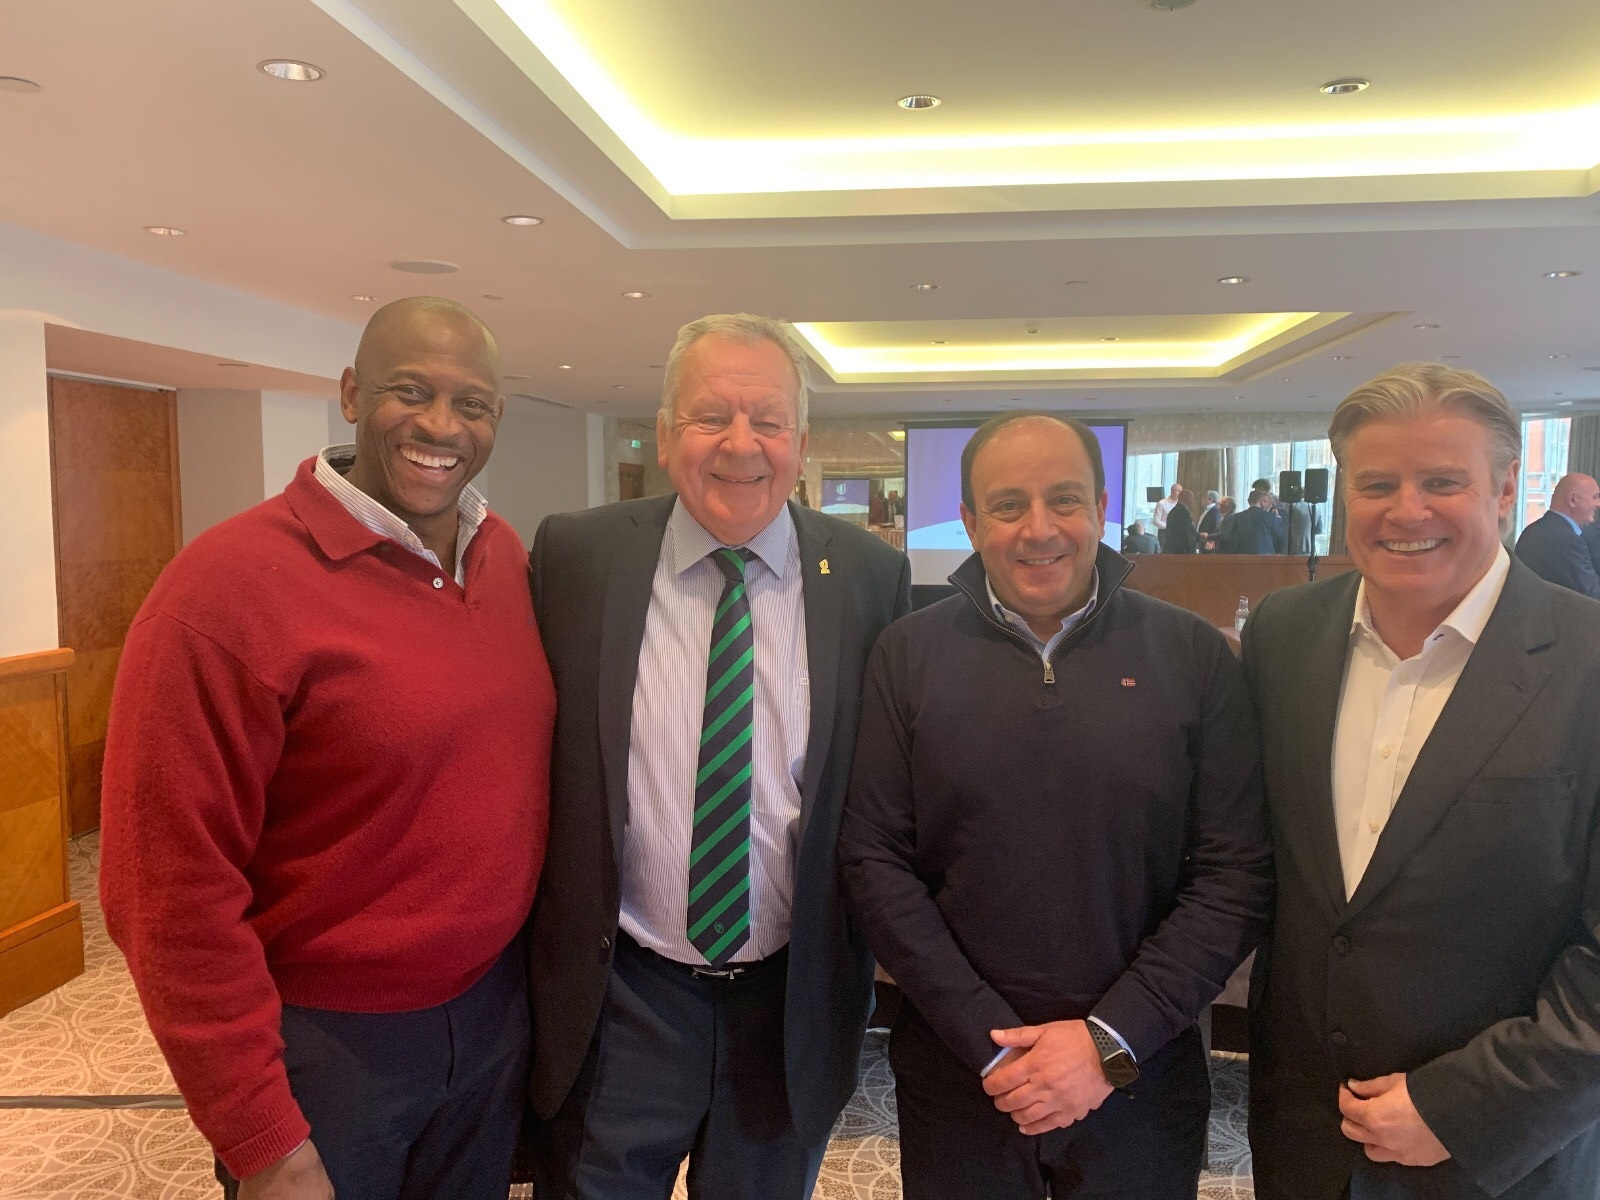 Mr. Herbert Mensah, President of the Ghana Rugby Union and member of the Executive Committee of Rugby Africa, World Rugby President Sir Bill Beaumont, Rugby Africa President Khaled Babbou, and World Rugby Director General Brett Gosper